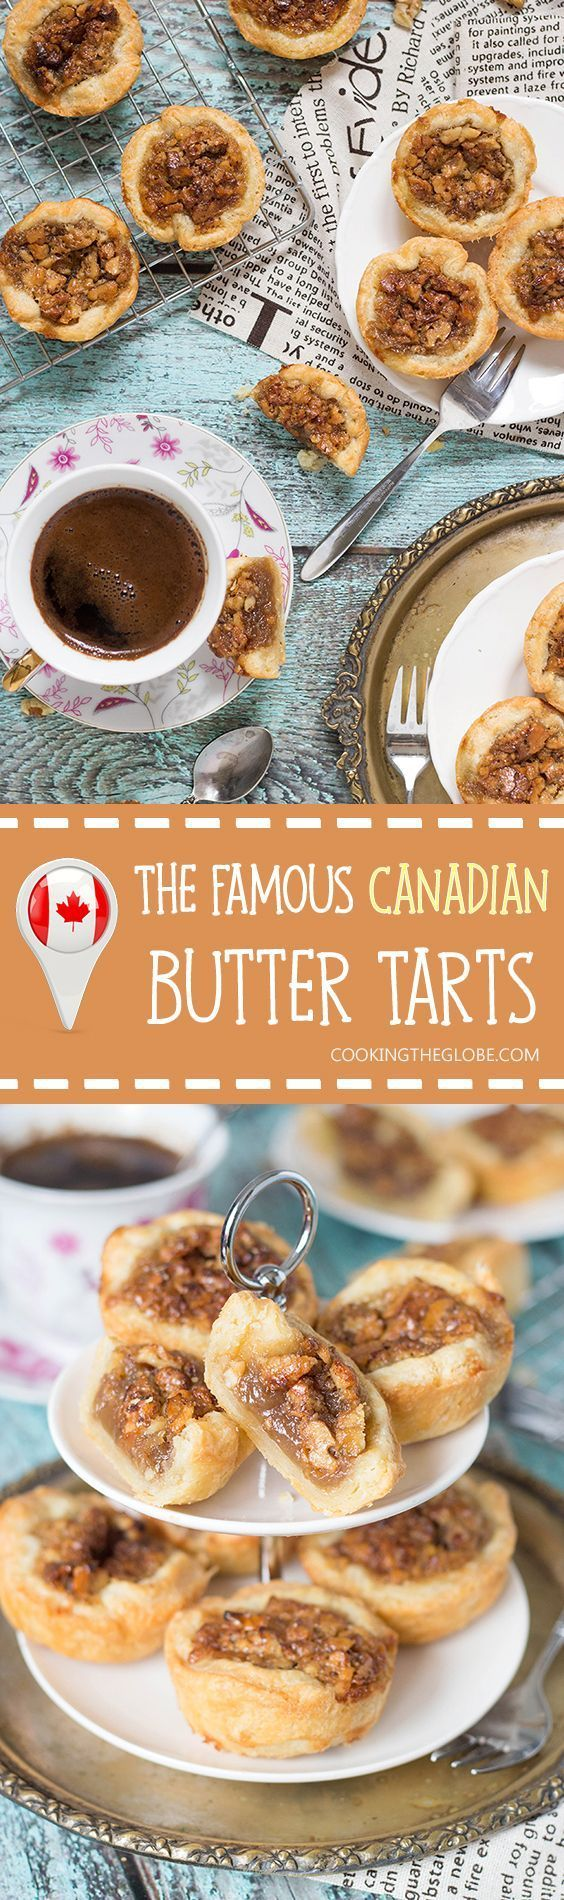 Butter Tarts are the traditional Canadian dessert. These little cute treats are sweet and buttery. One of the best desserts I have ever tried! |